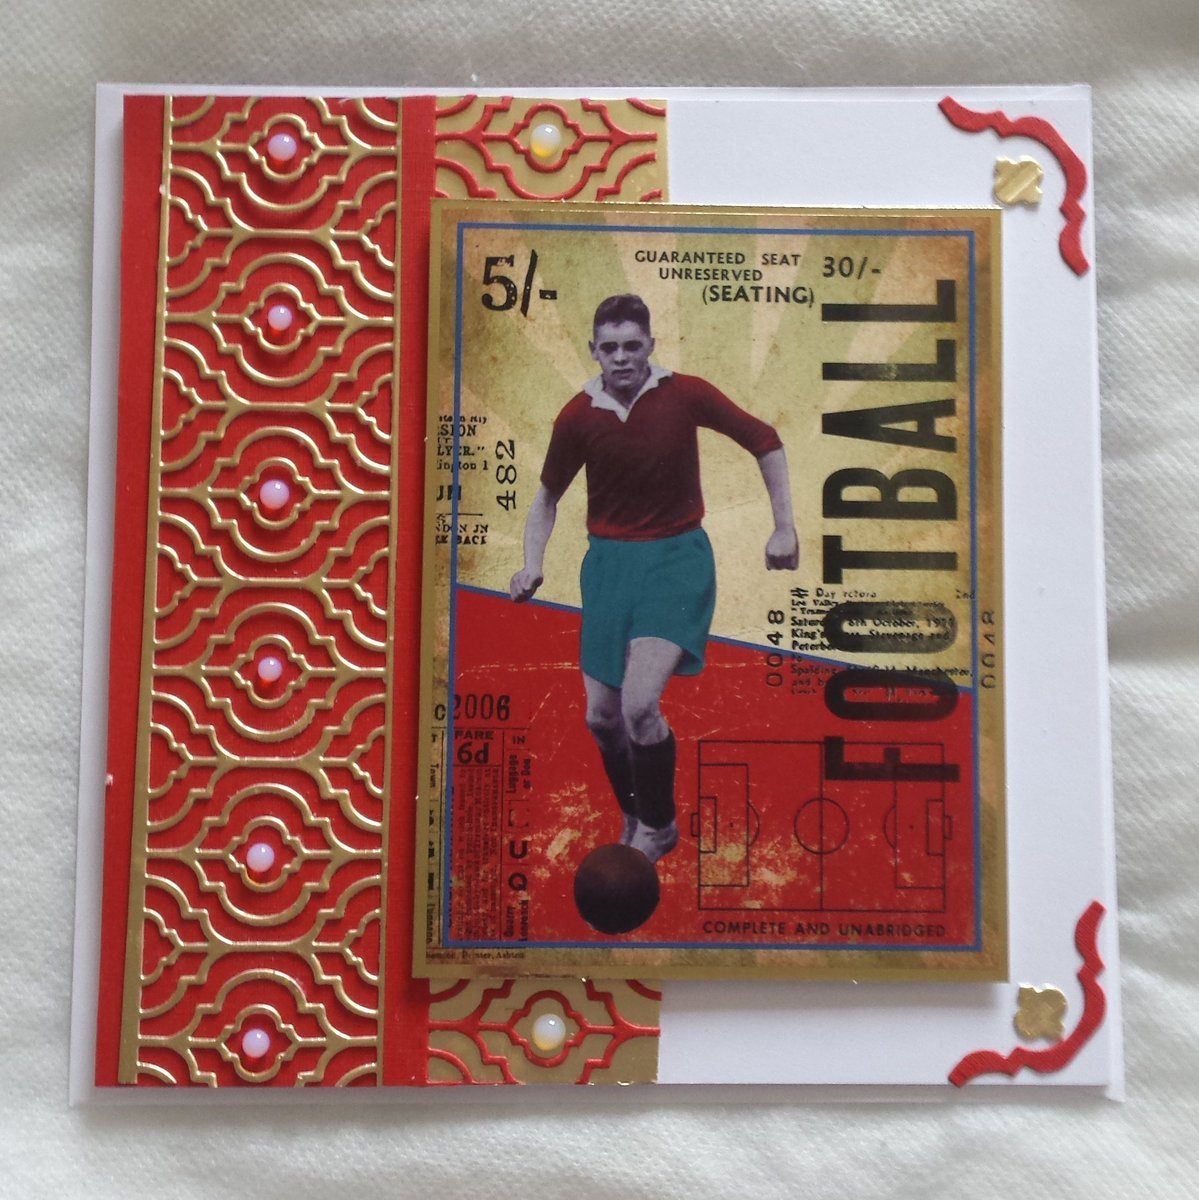 Just finished my latest #craft blog - football card inspired by #EURO2016 read how I made it https://t.co/oEB5N59YFw https://t.co/zOtiu8B3WA